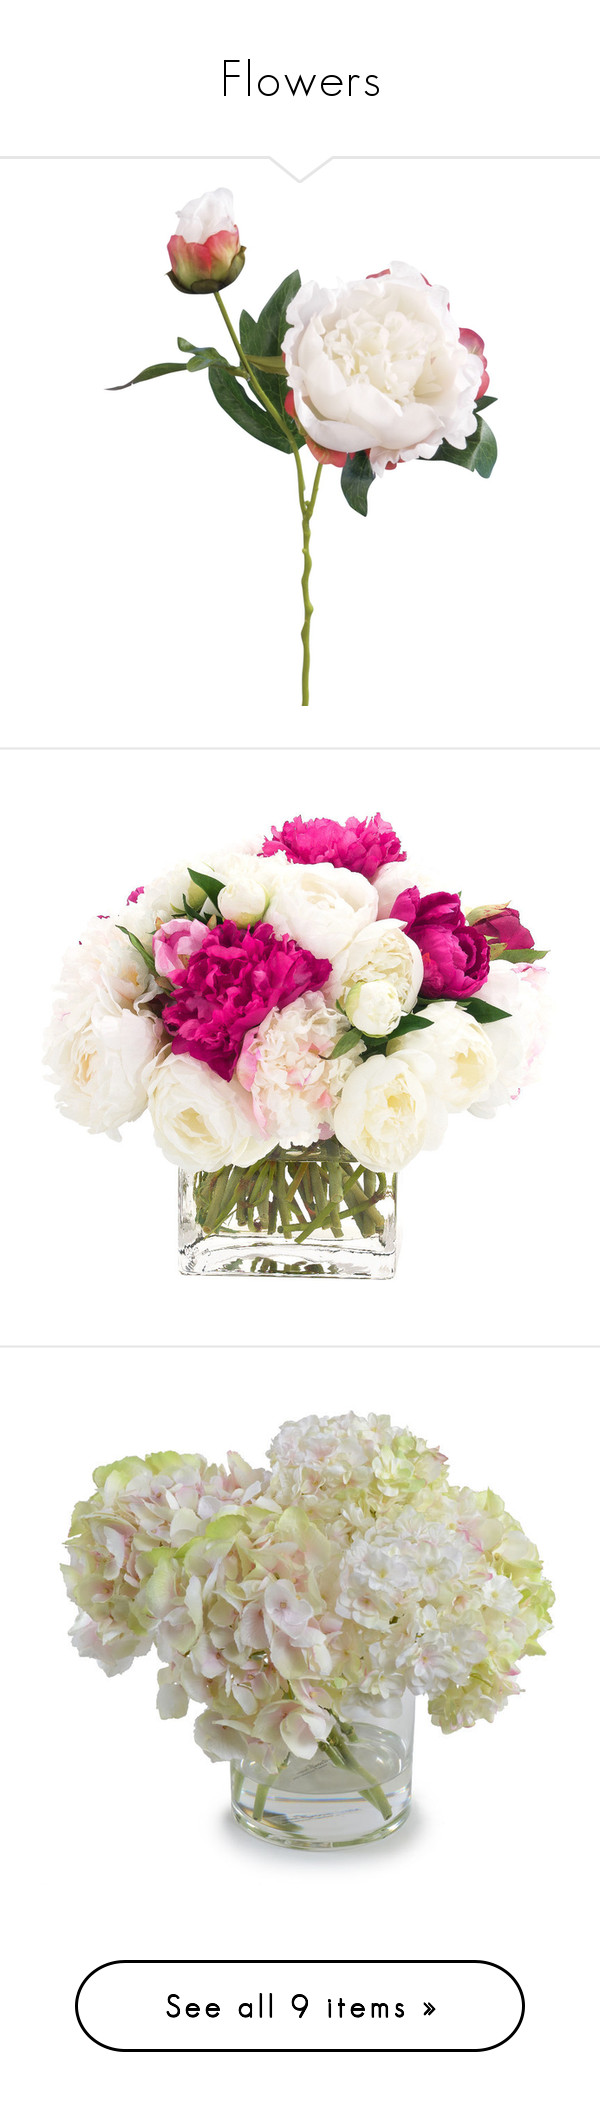 Flowers by arina bianca liked on polyvore featuring home home flowers by arina bianca liked on polyvore featuring home home decor floral decor peony artificial flowers john lewis white home decor fake peony mightylinksfo